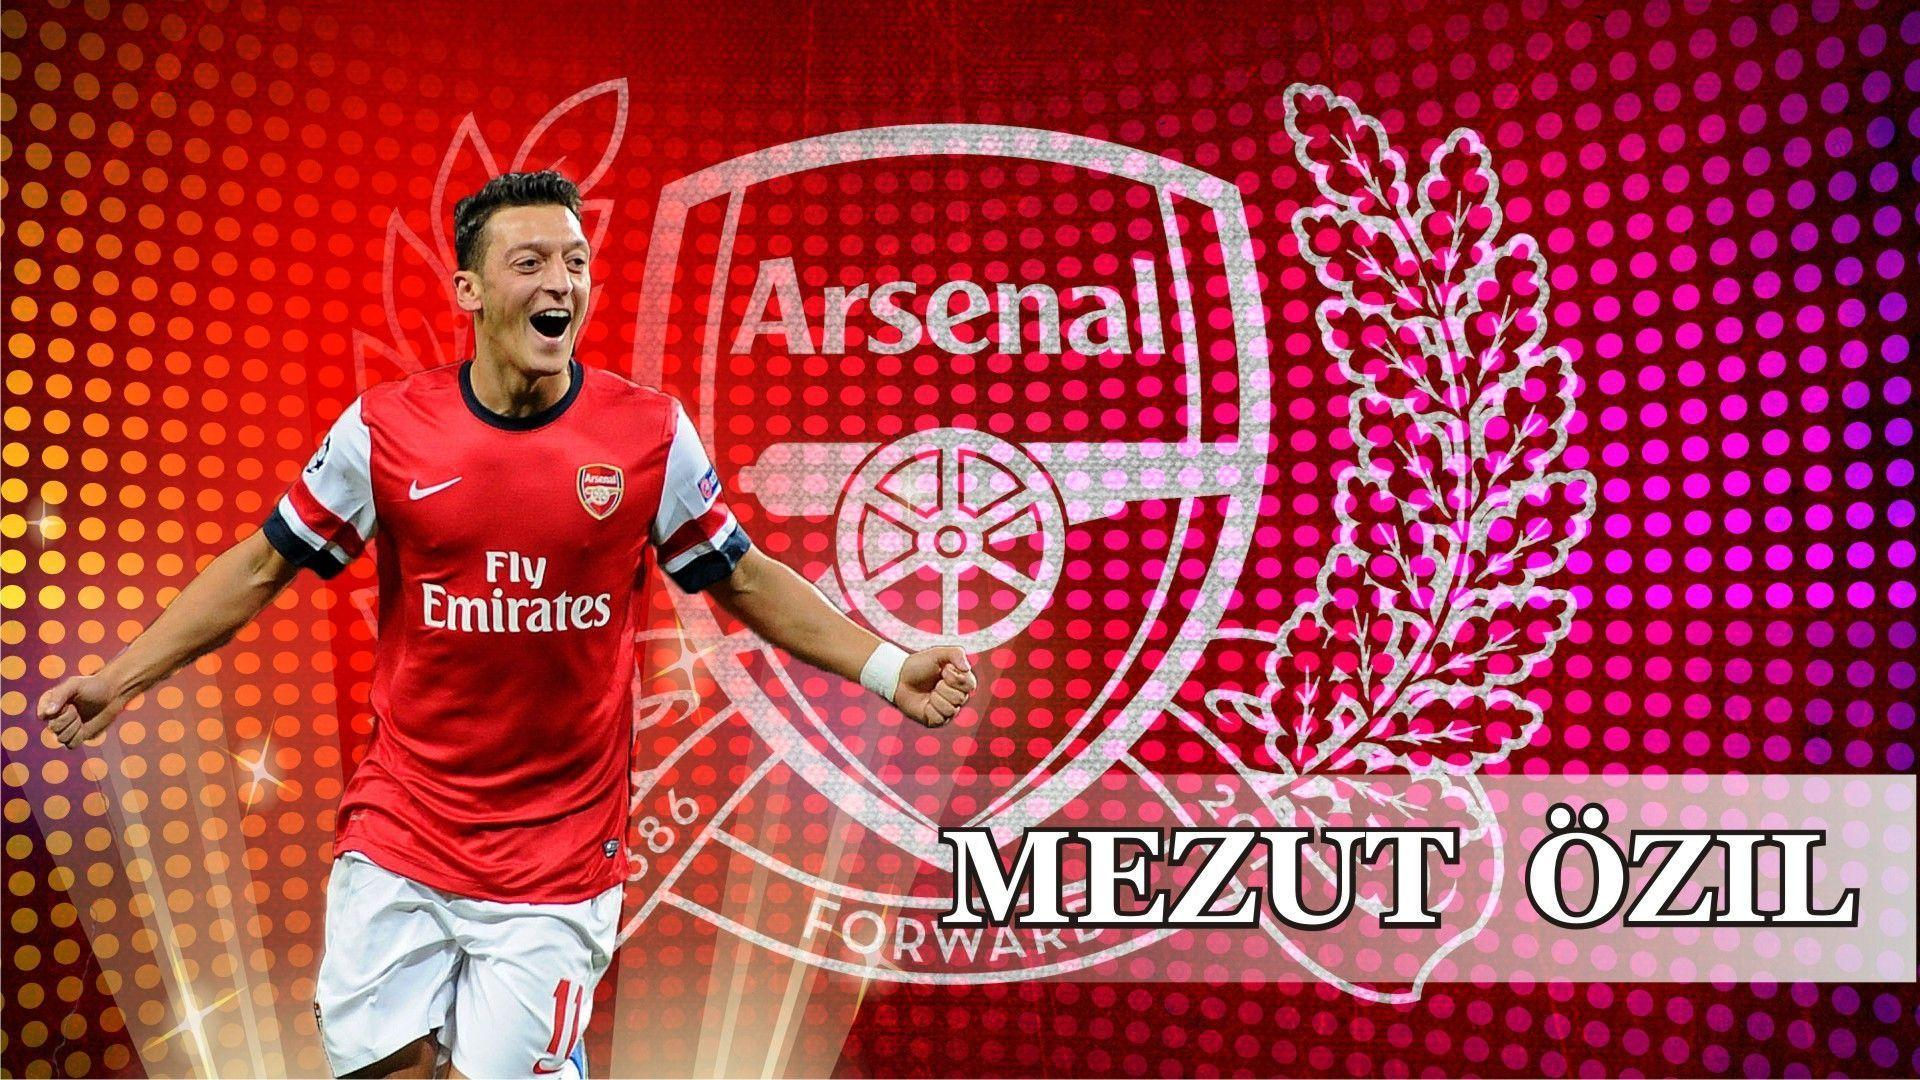 Mesut Ozil Arsenal HD Wallpapers for Desktop